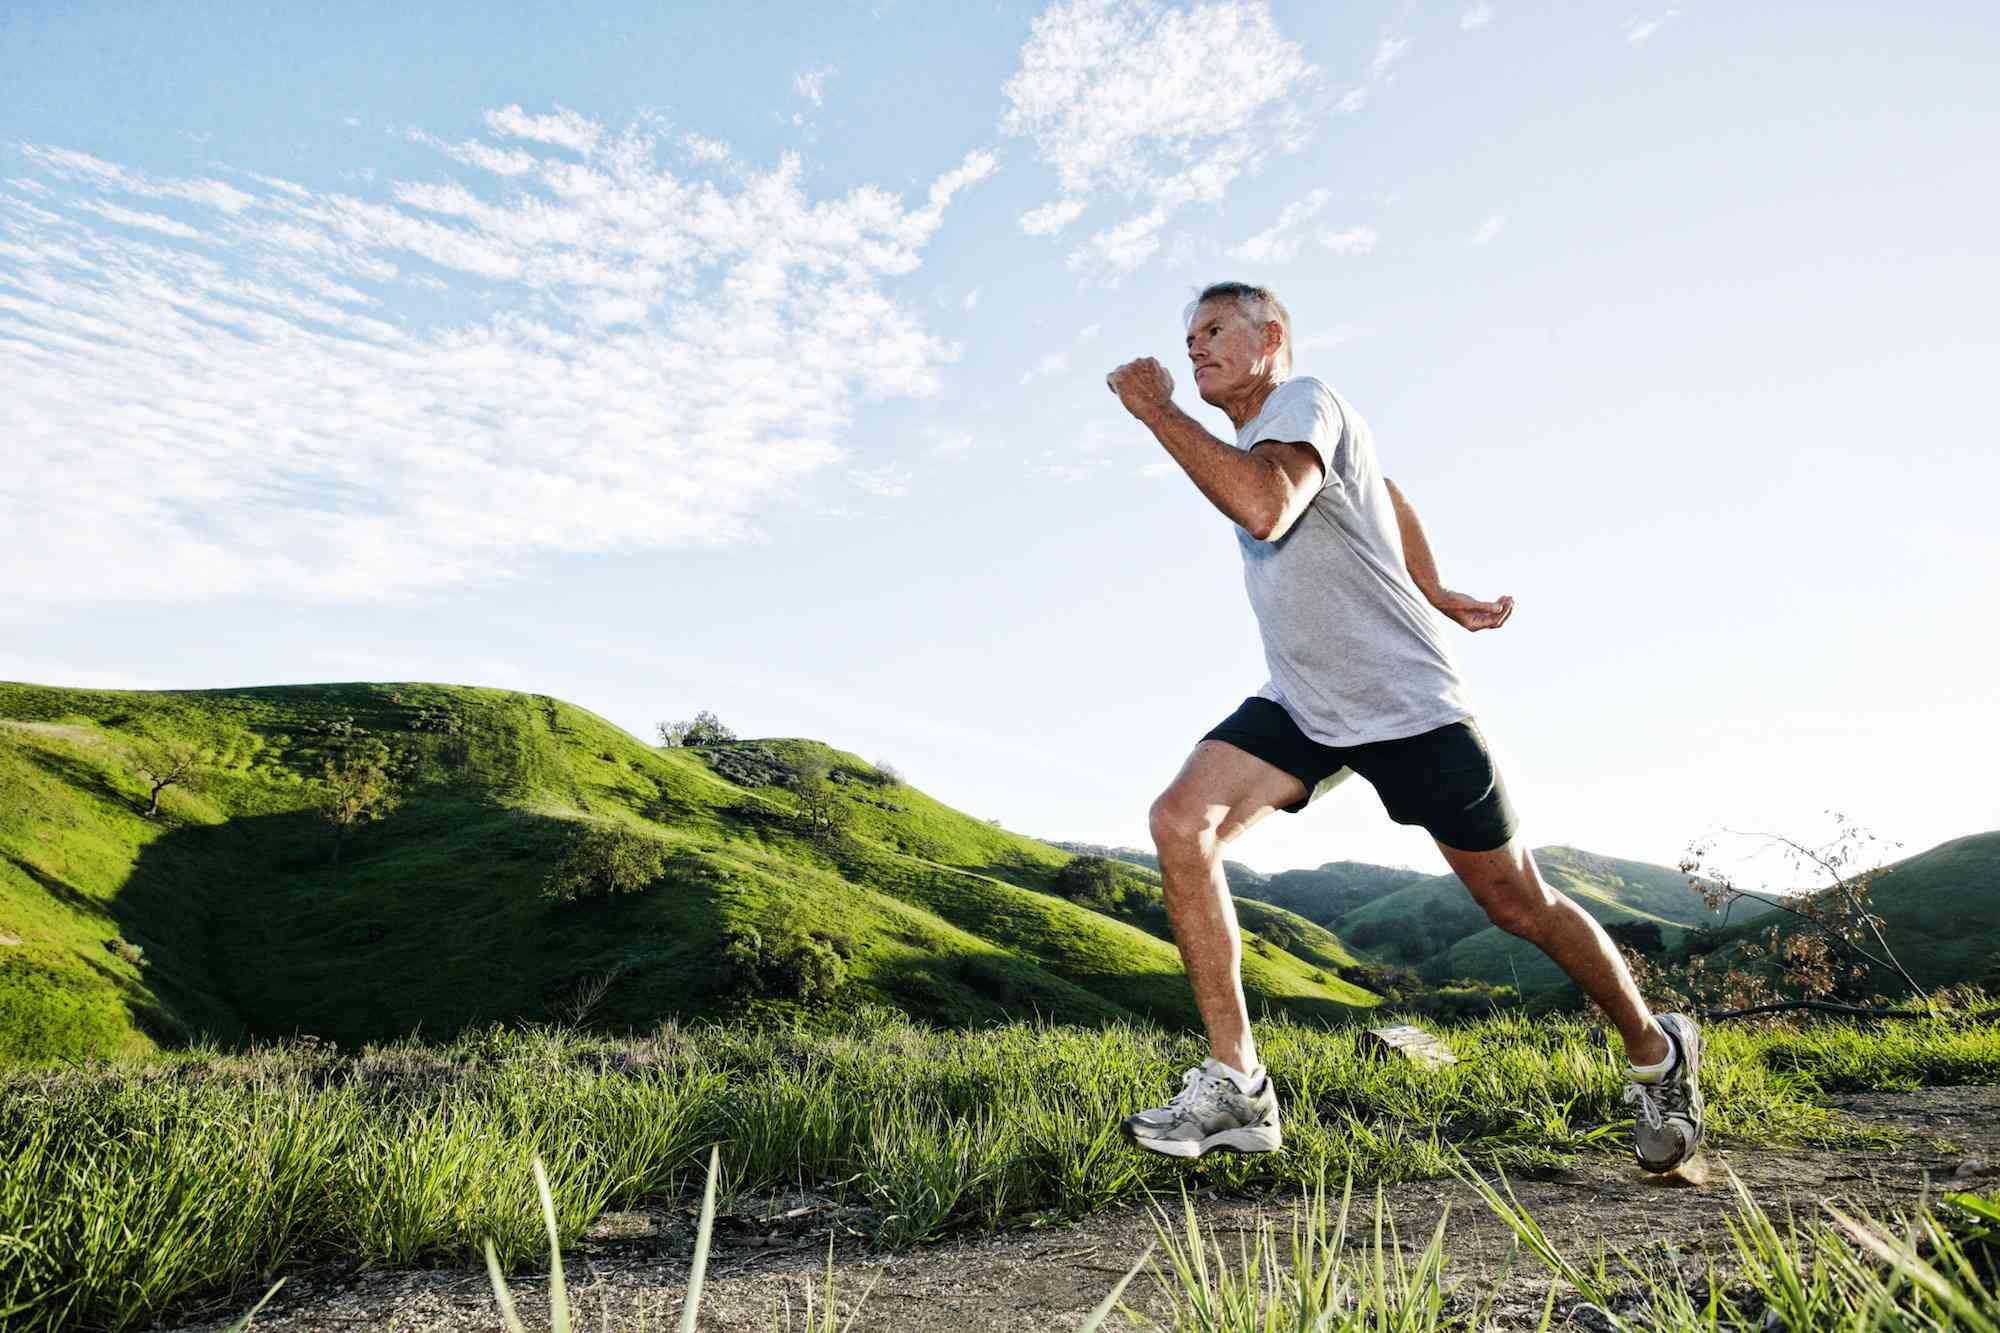 Older man jogging on a dirt path during a sunny day